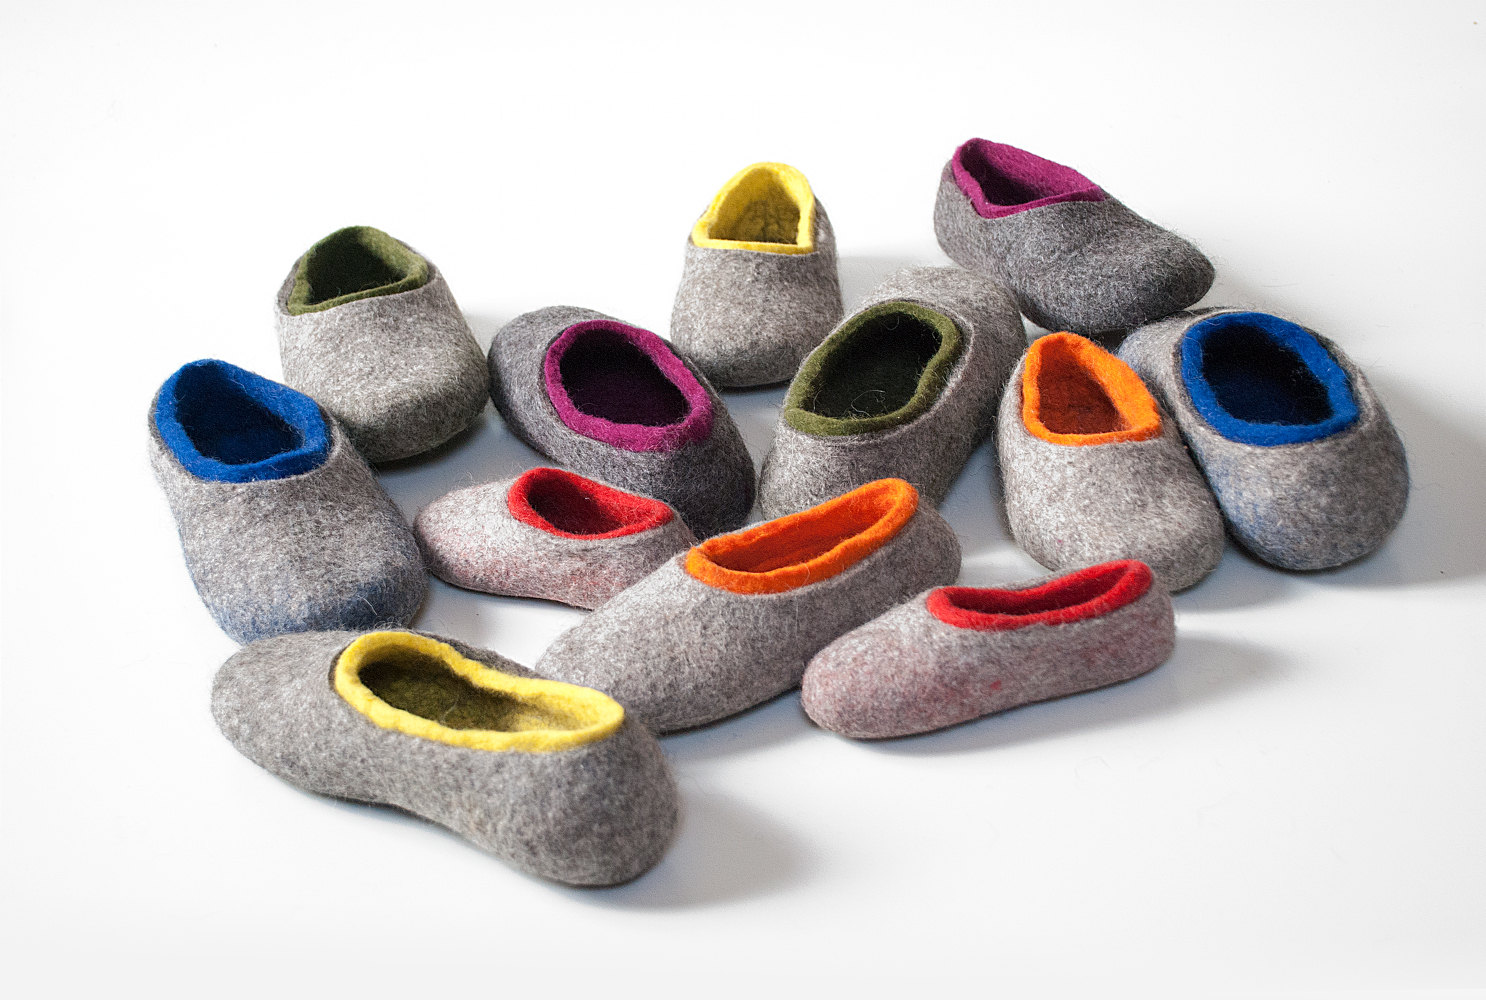 b04451cc7807 Playful toddler wool slippers, Kids home slippers, felted wool slippers for  children, little kid gift wool slippers, non slip home shoes